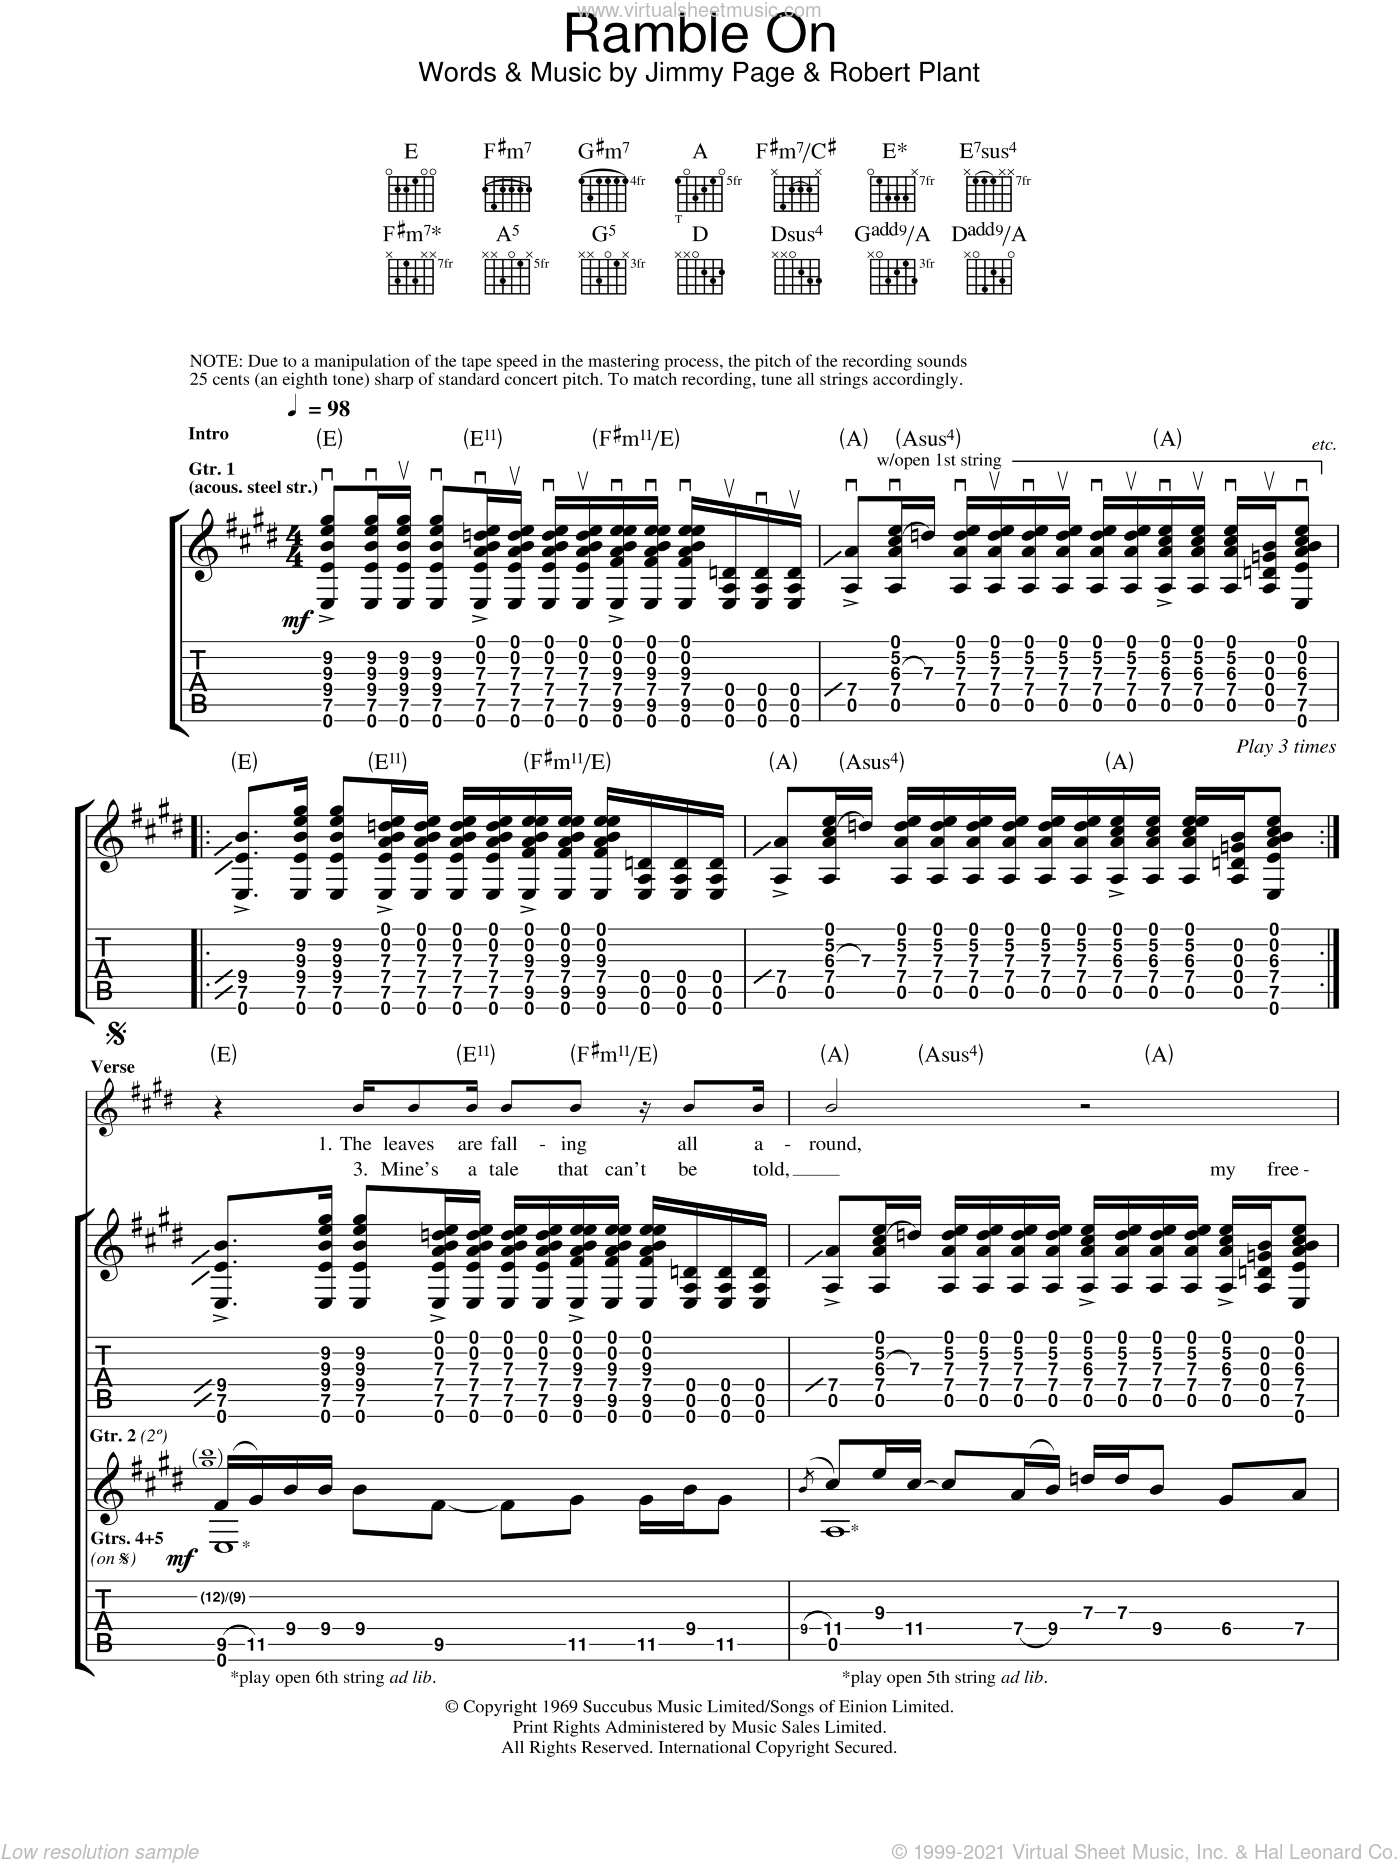 Ramble On sheet music for guitar (tablature) by Led Zeppelin, Jimmy Page and Robert Plant, intermediate skill level